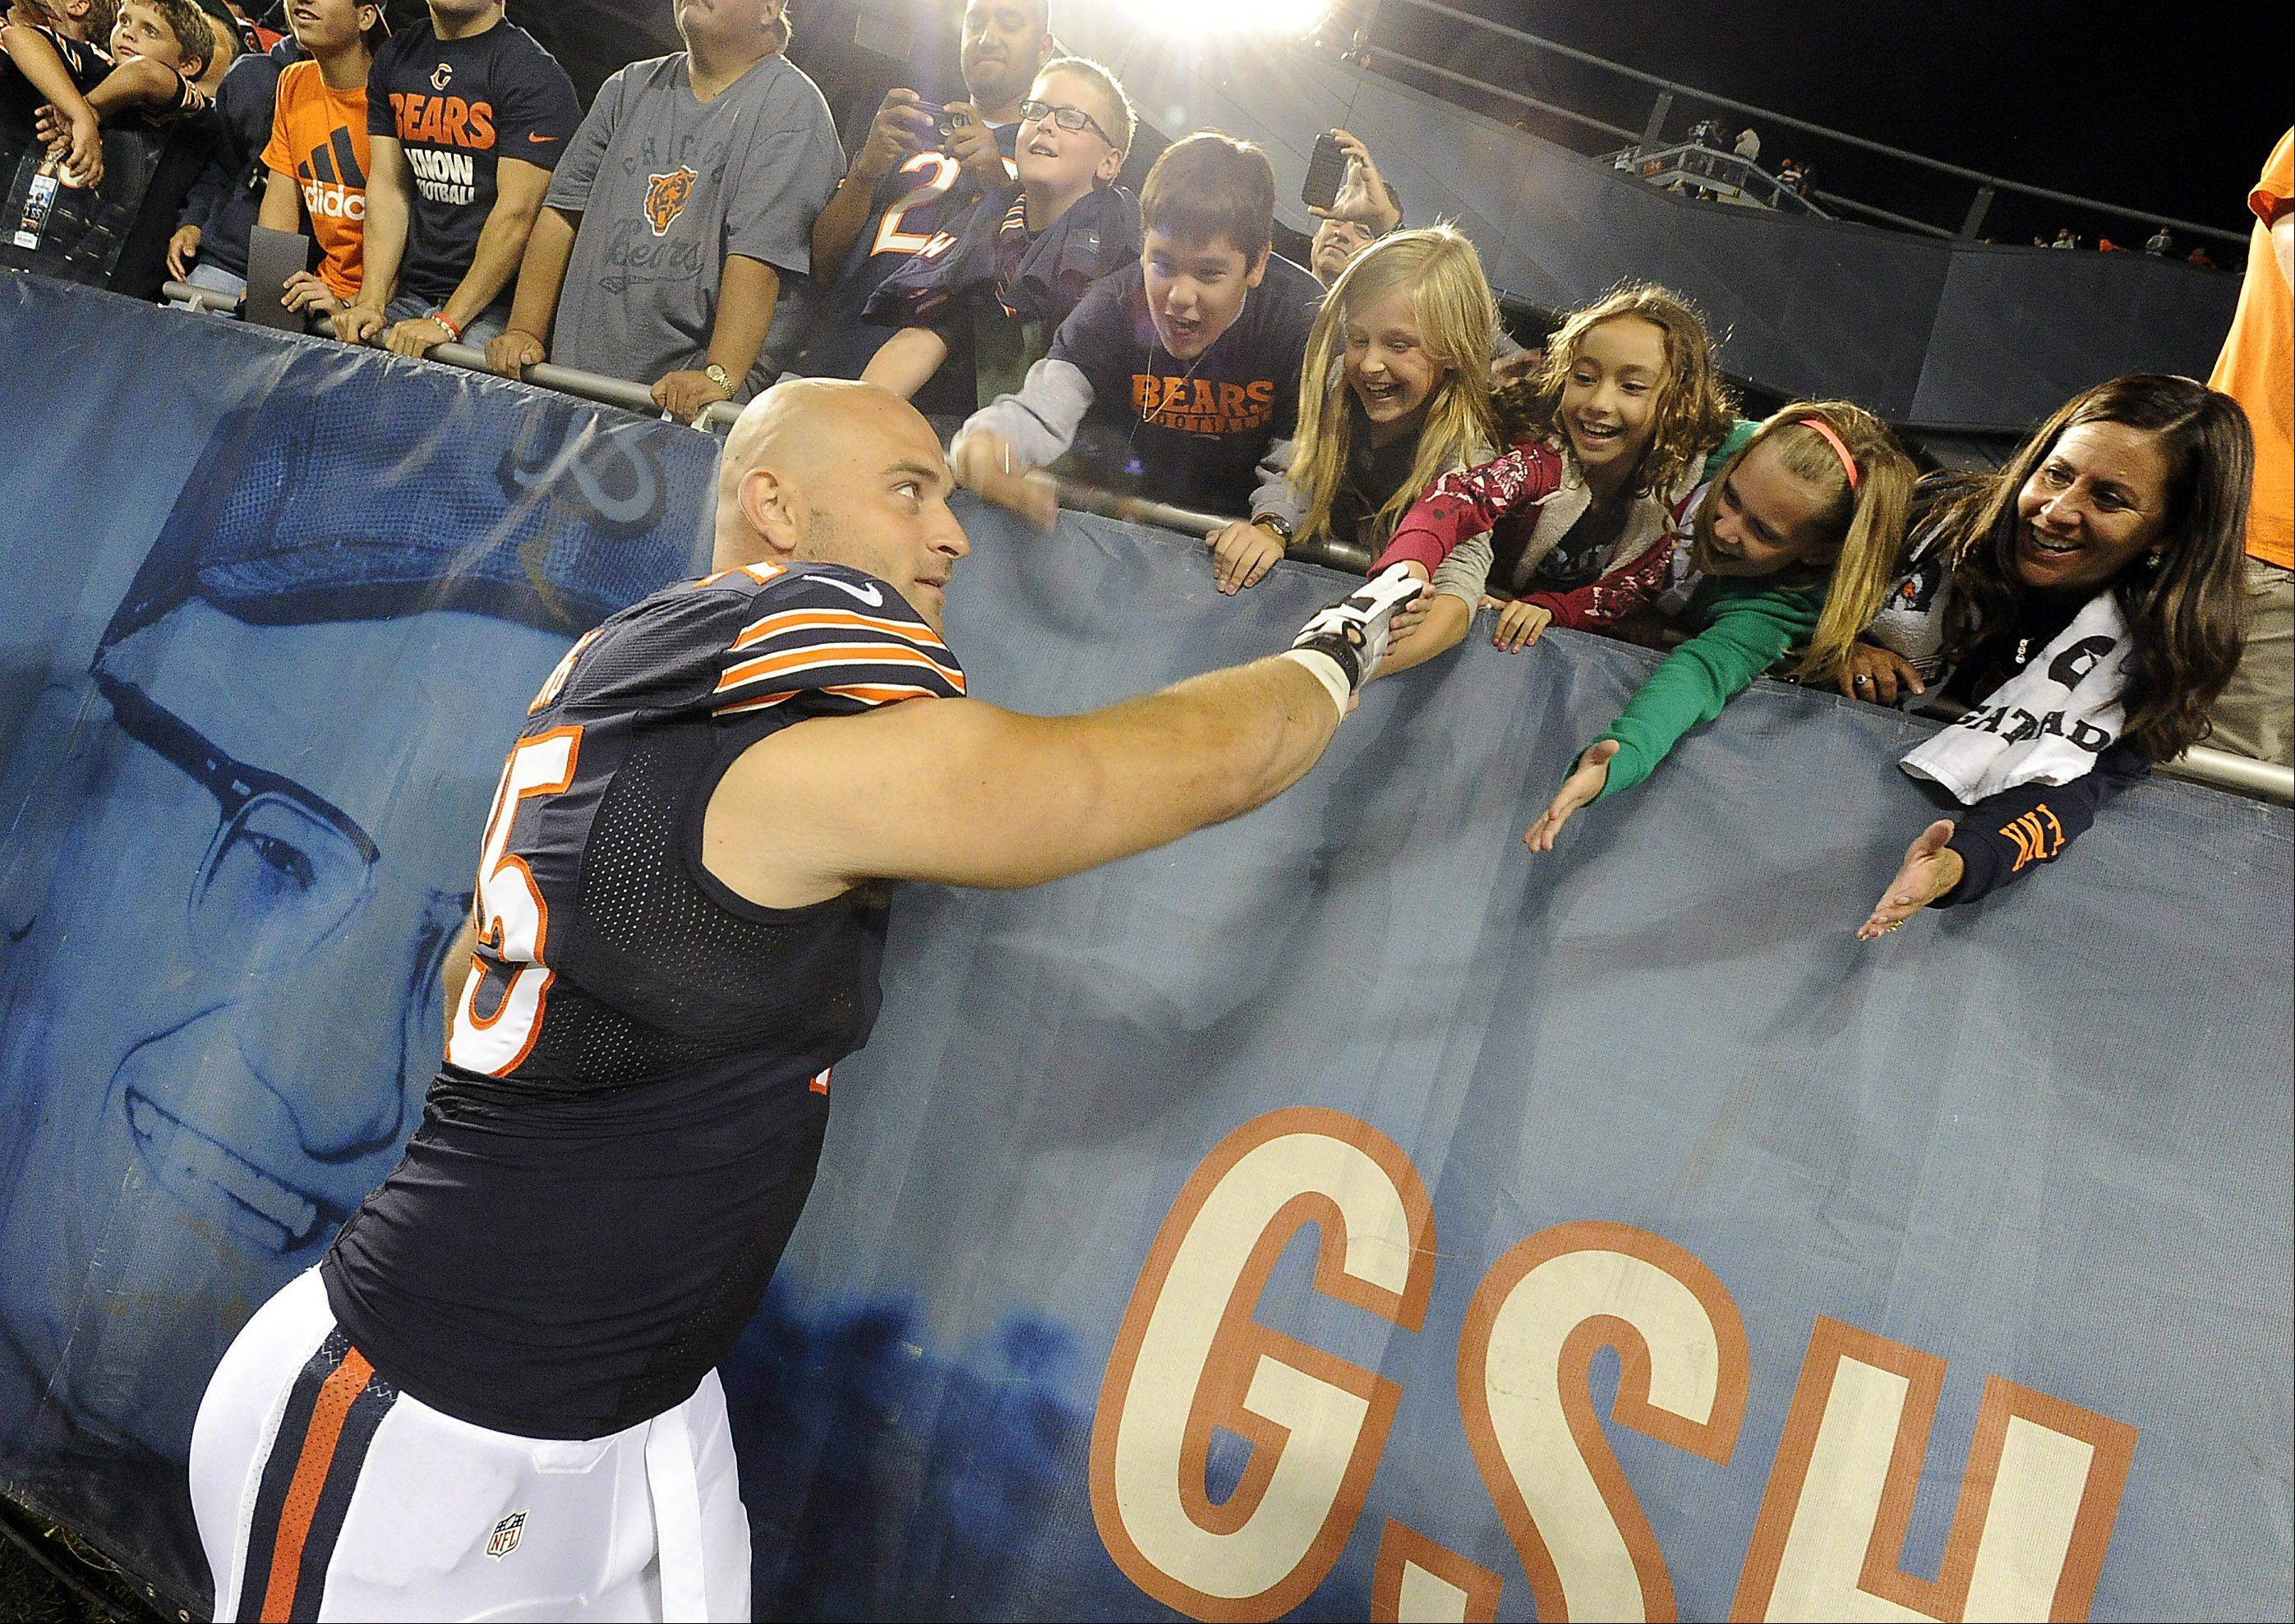 Mark Welsh/mwelsh@dailyherald.com � Bears Kyle Long after the game thanks the fans.